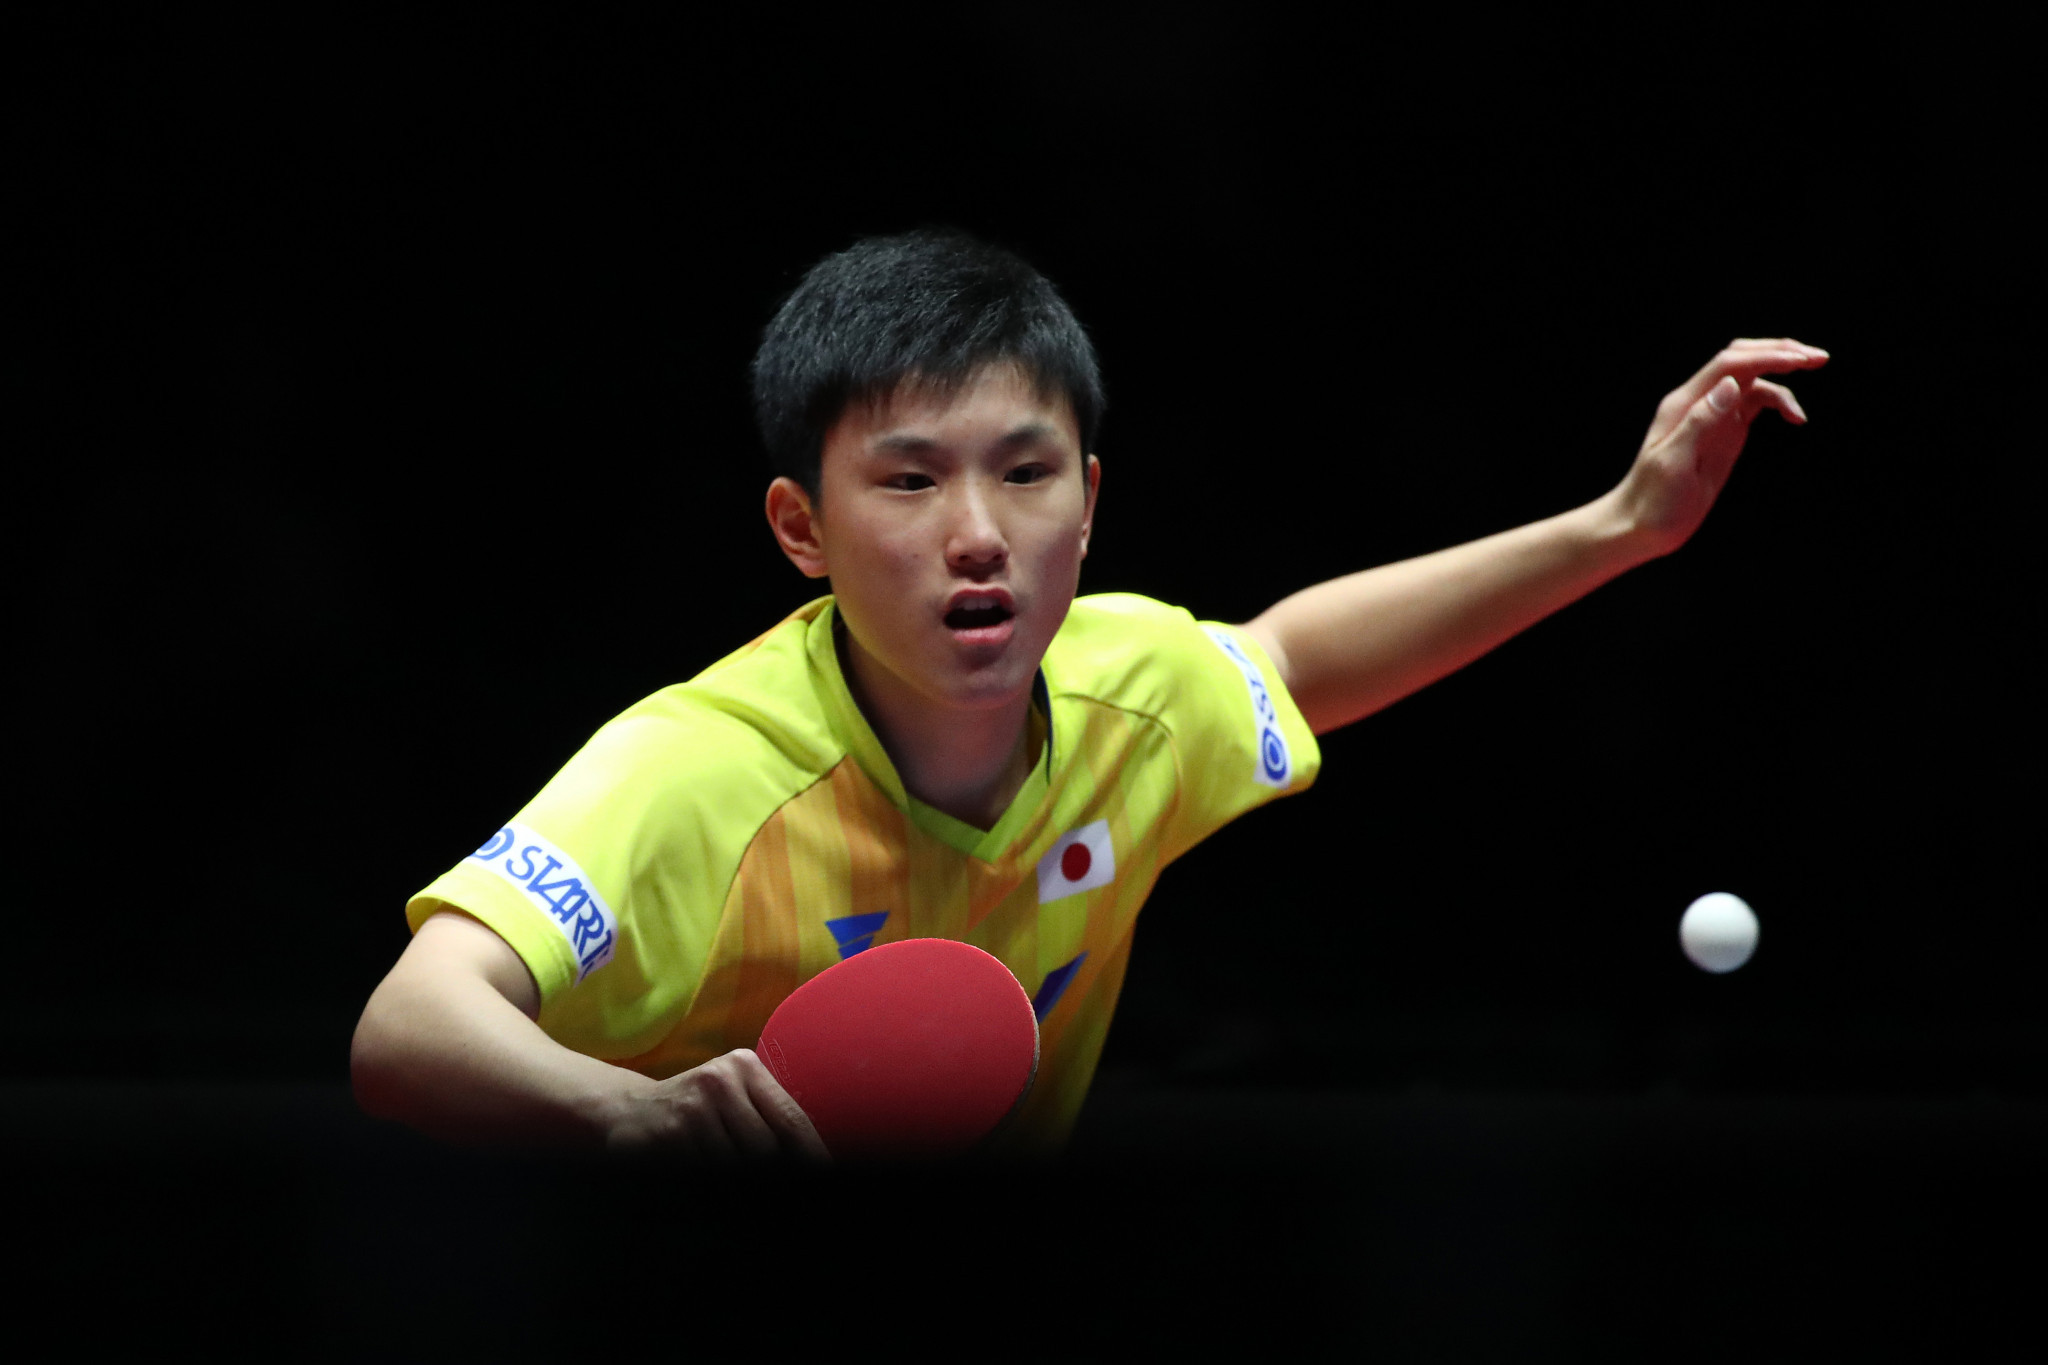 A proposal to offer different colour rubbers will be considered by the ITTF ©Getty Images